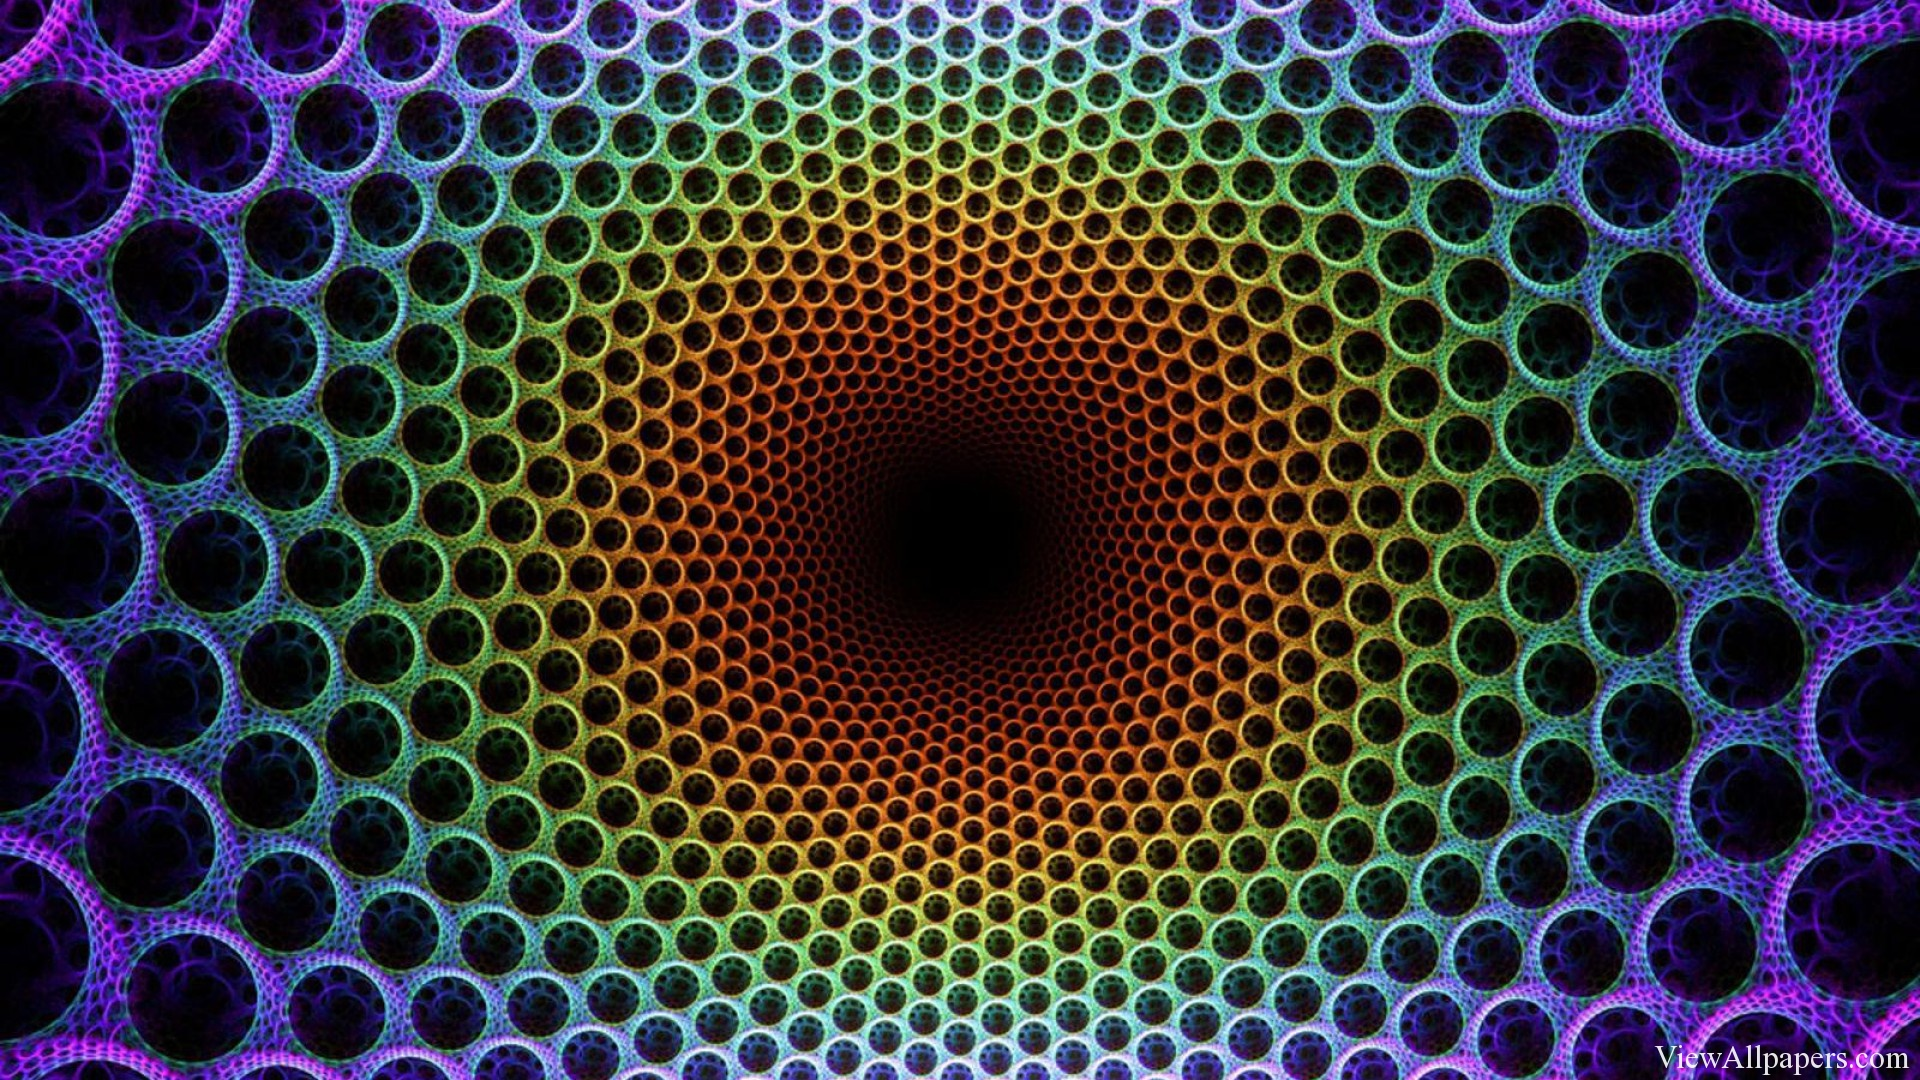 trippy hd wallpapers 1920x1080 wallpapersafari